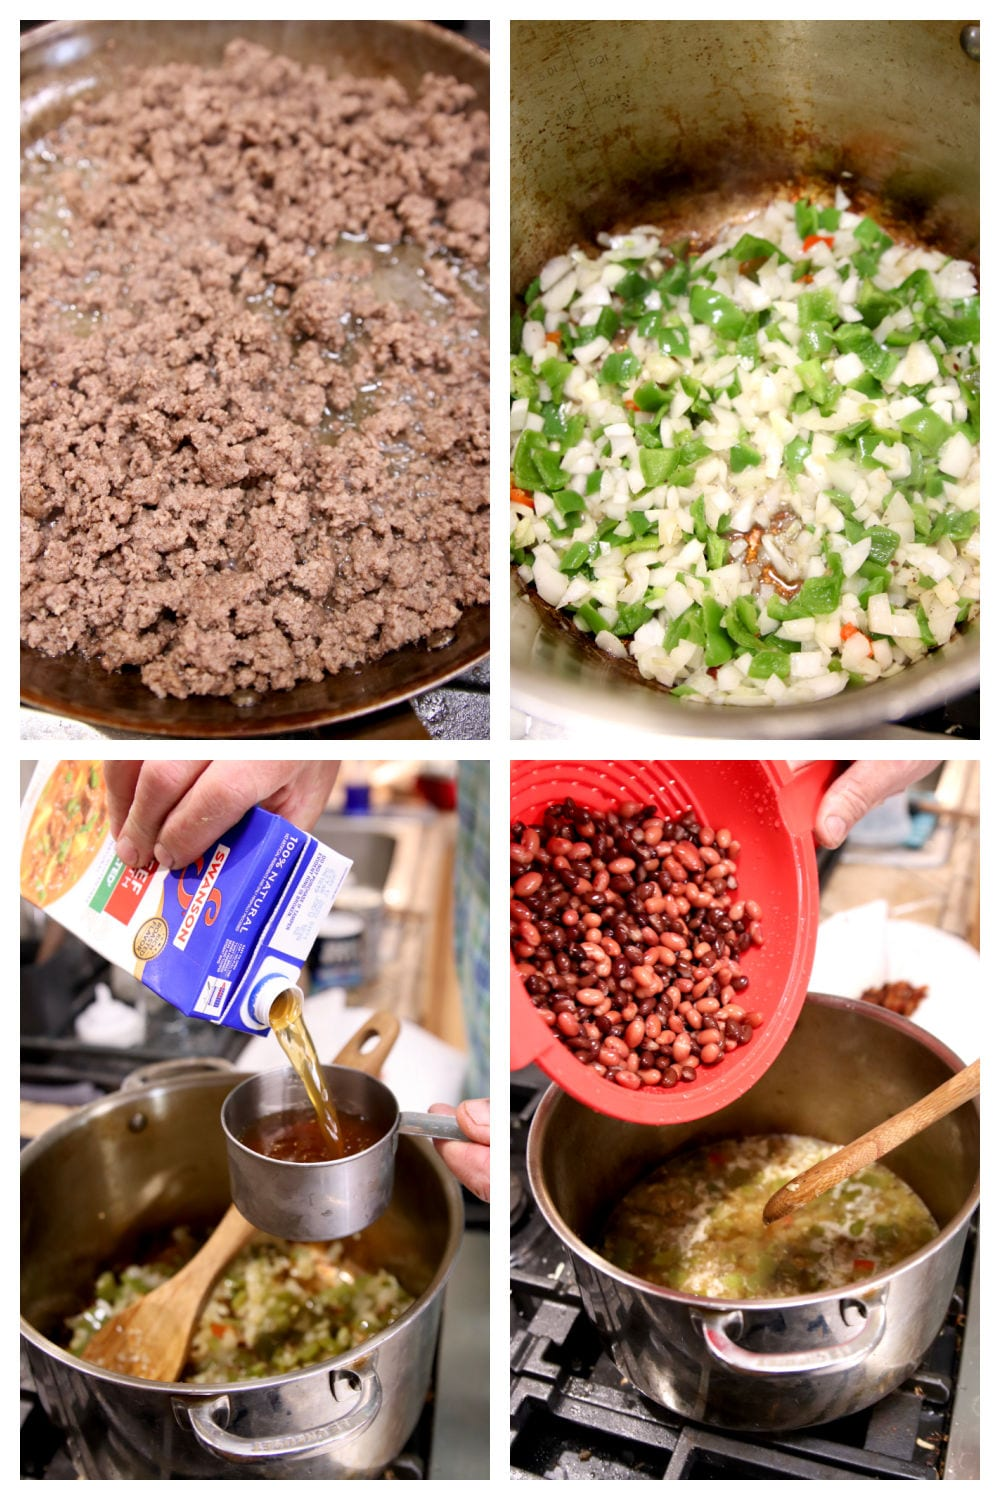 steps to making chili, browning ground beef, cooking vegetables, adding broth, beans